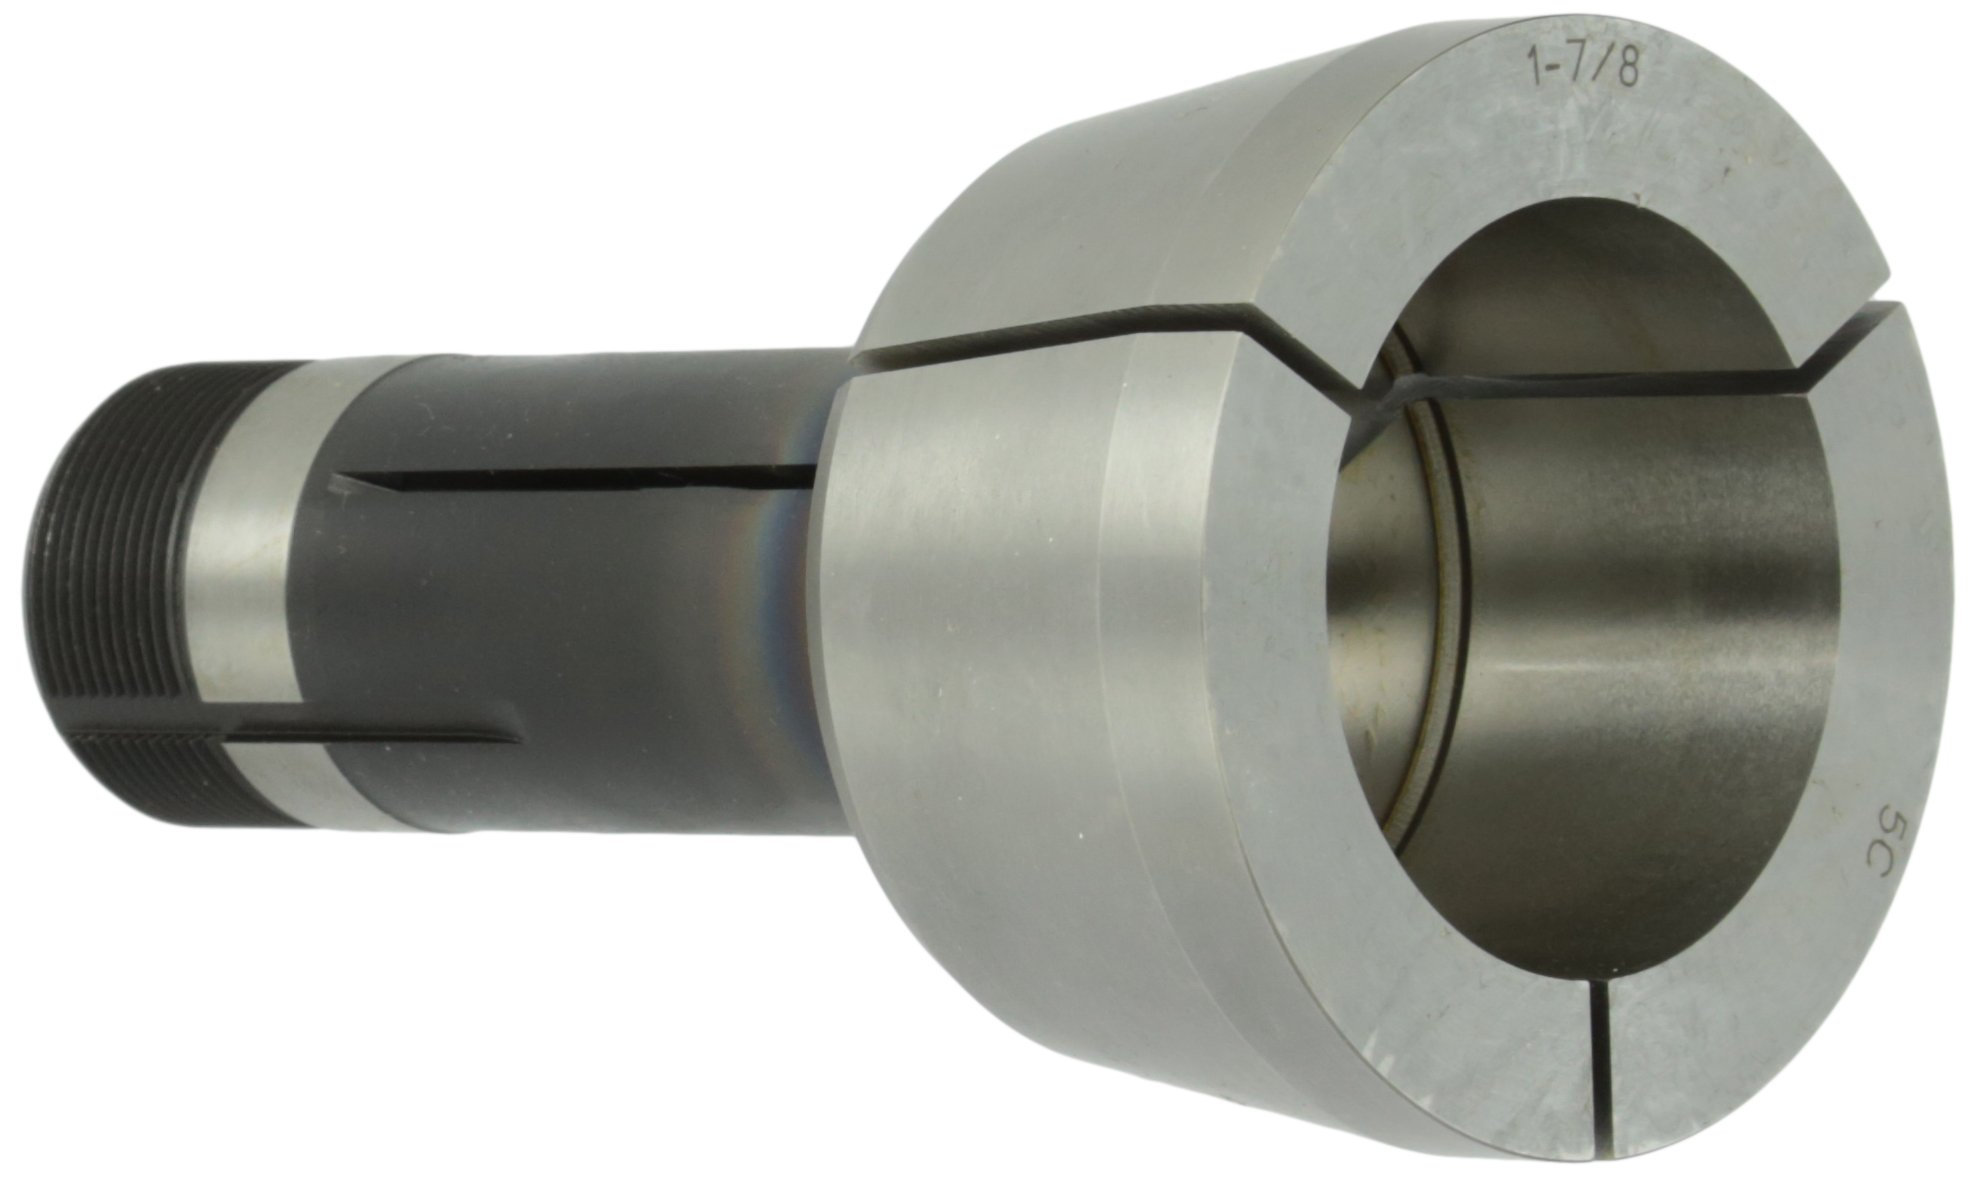 Hardinge 5C Round Smooth 2'' Extra Depth Step Chuck, 1-1/2'' Hole Size by Hardinge